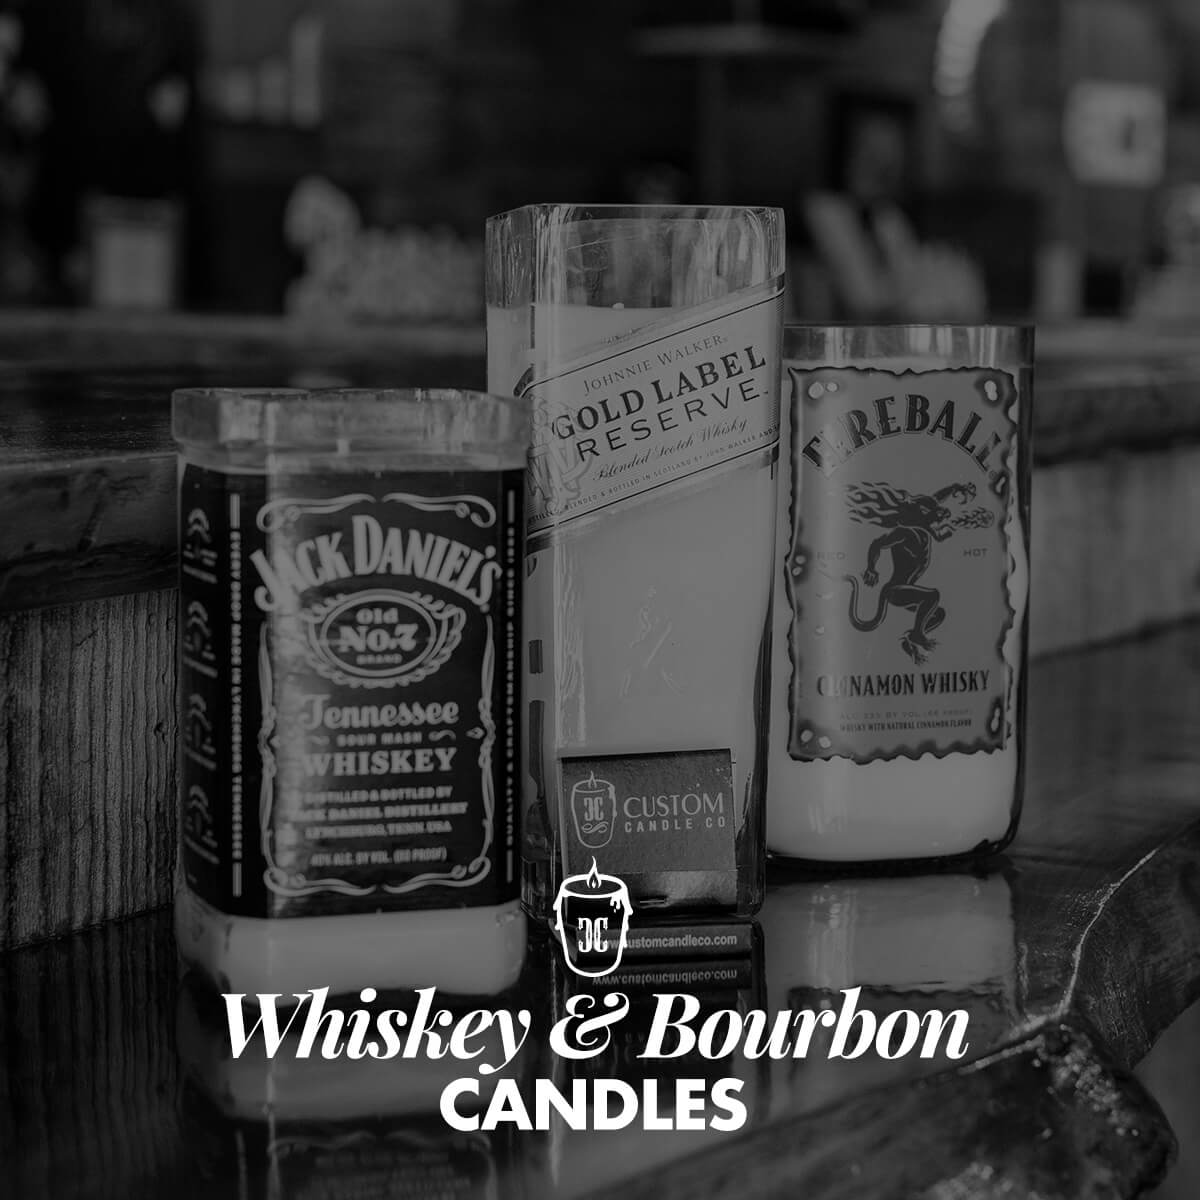 whiskey-bourbon-candles-customcandleco-1